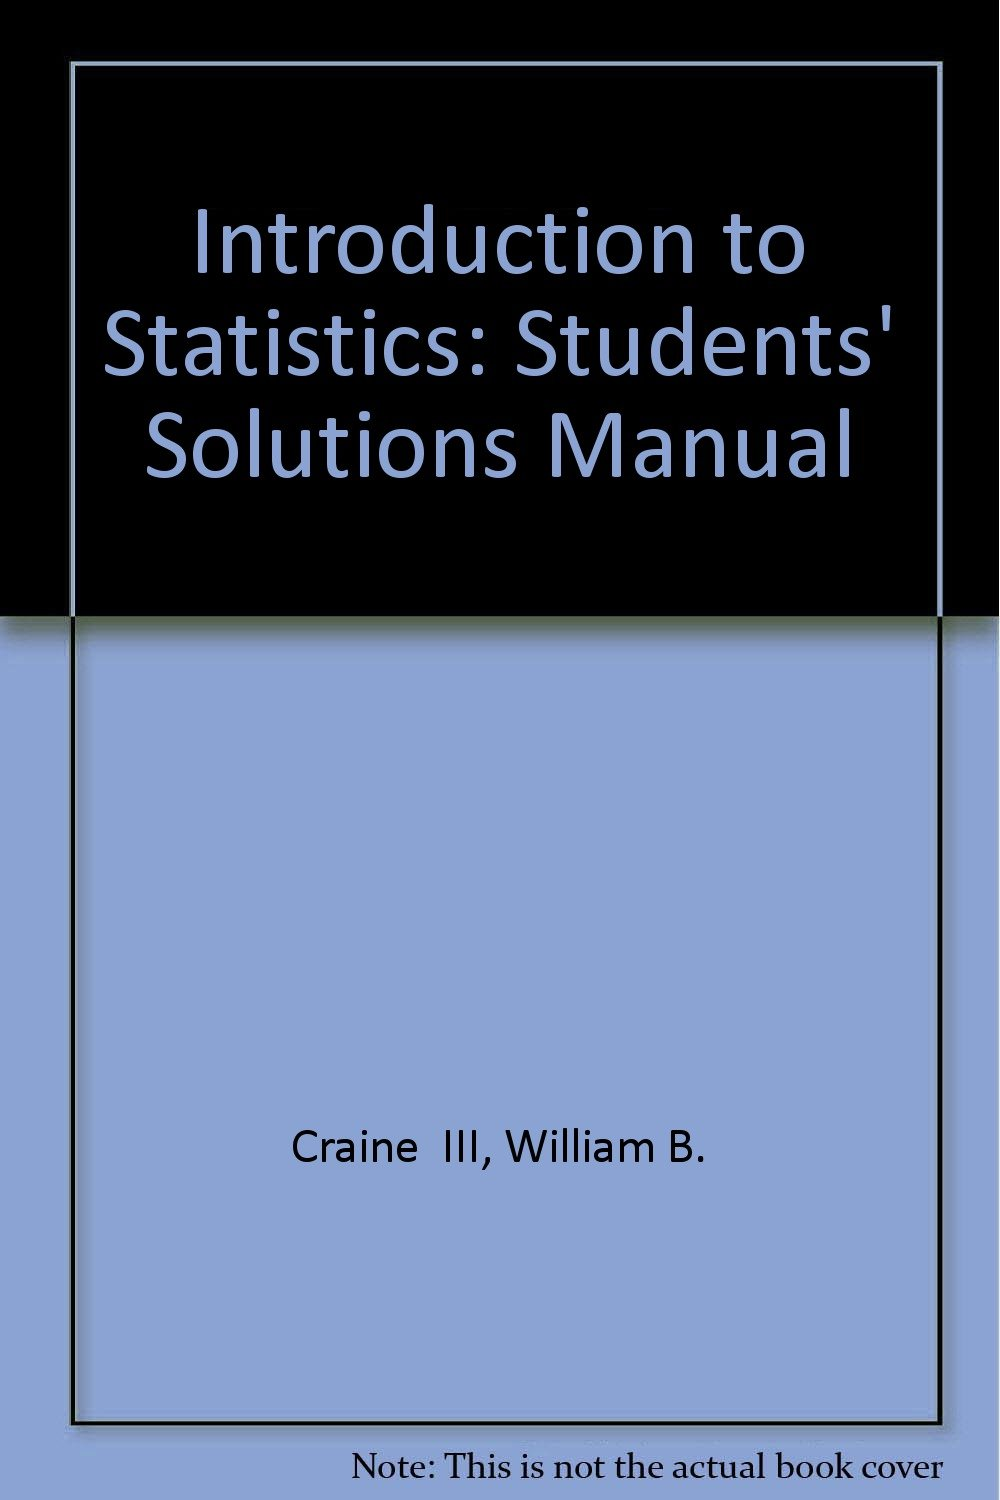 Introduction to Statistics: Students' Solutions Manual: Richard De Deveaux:  9780321165909: Amazon.com: Books